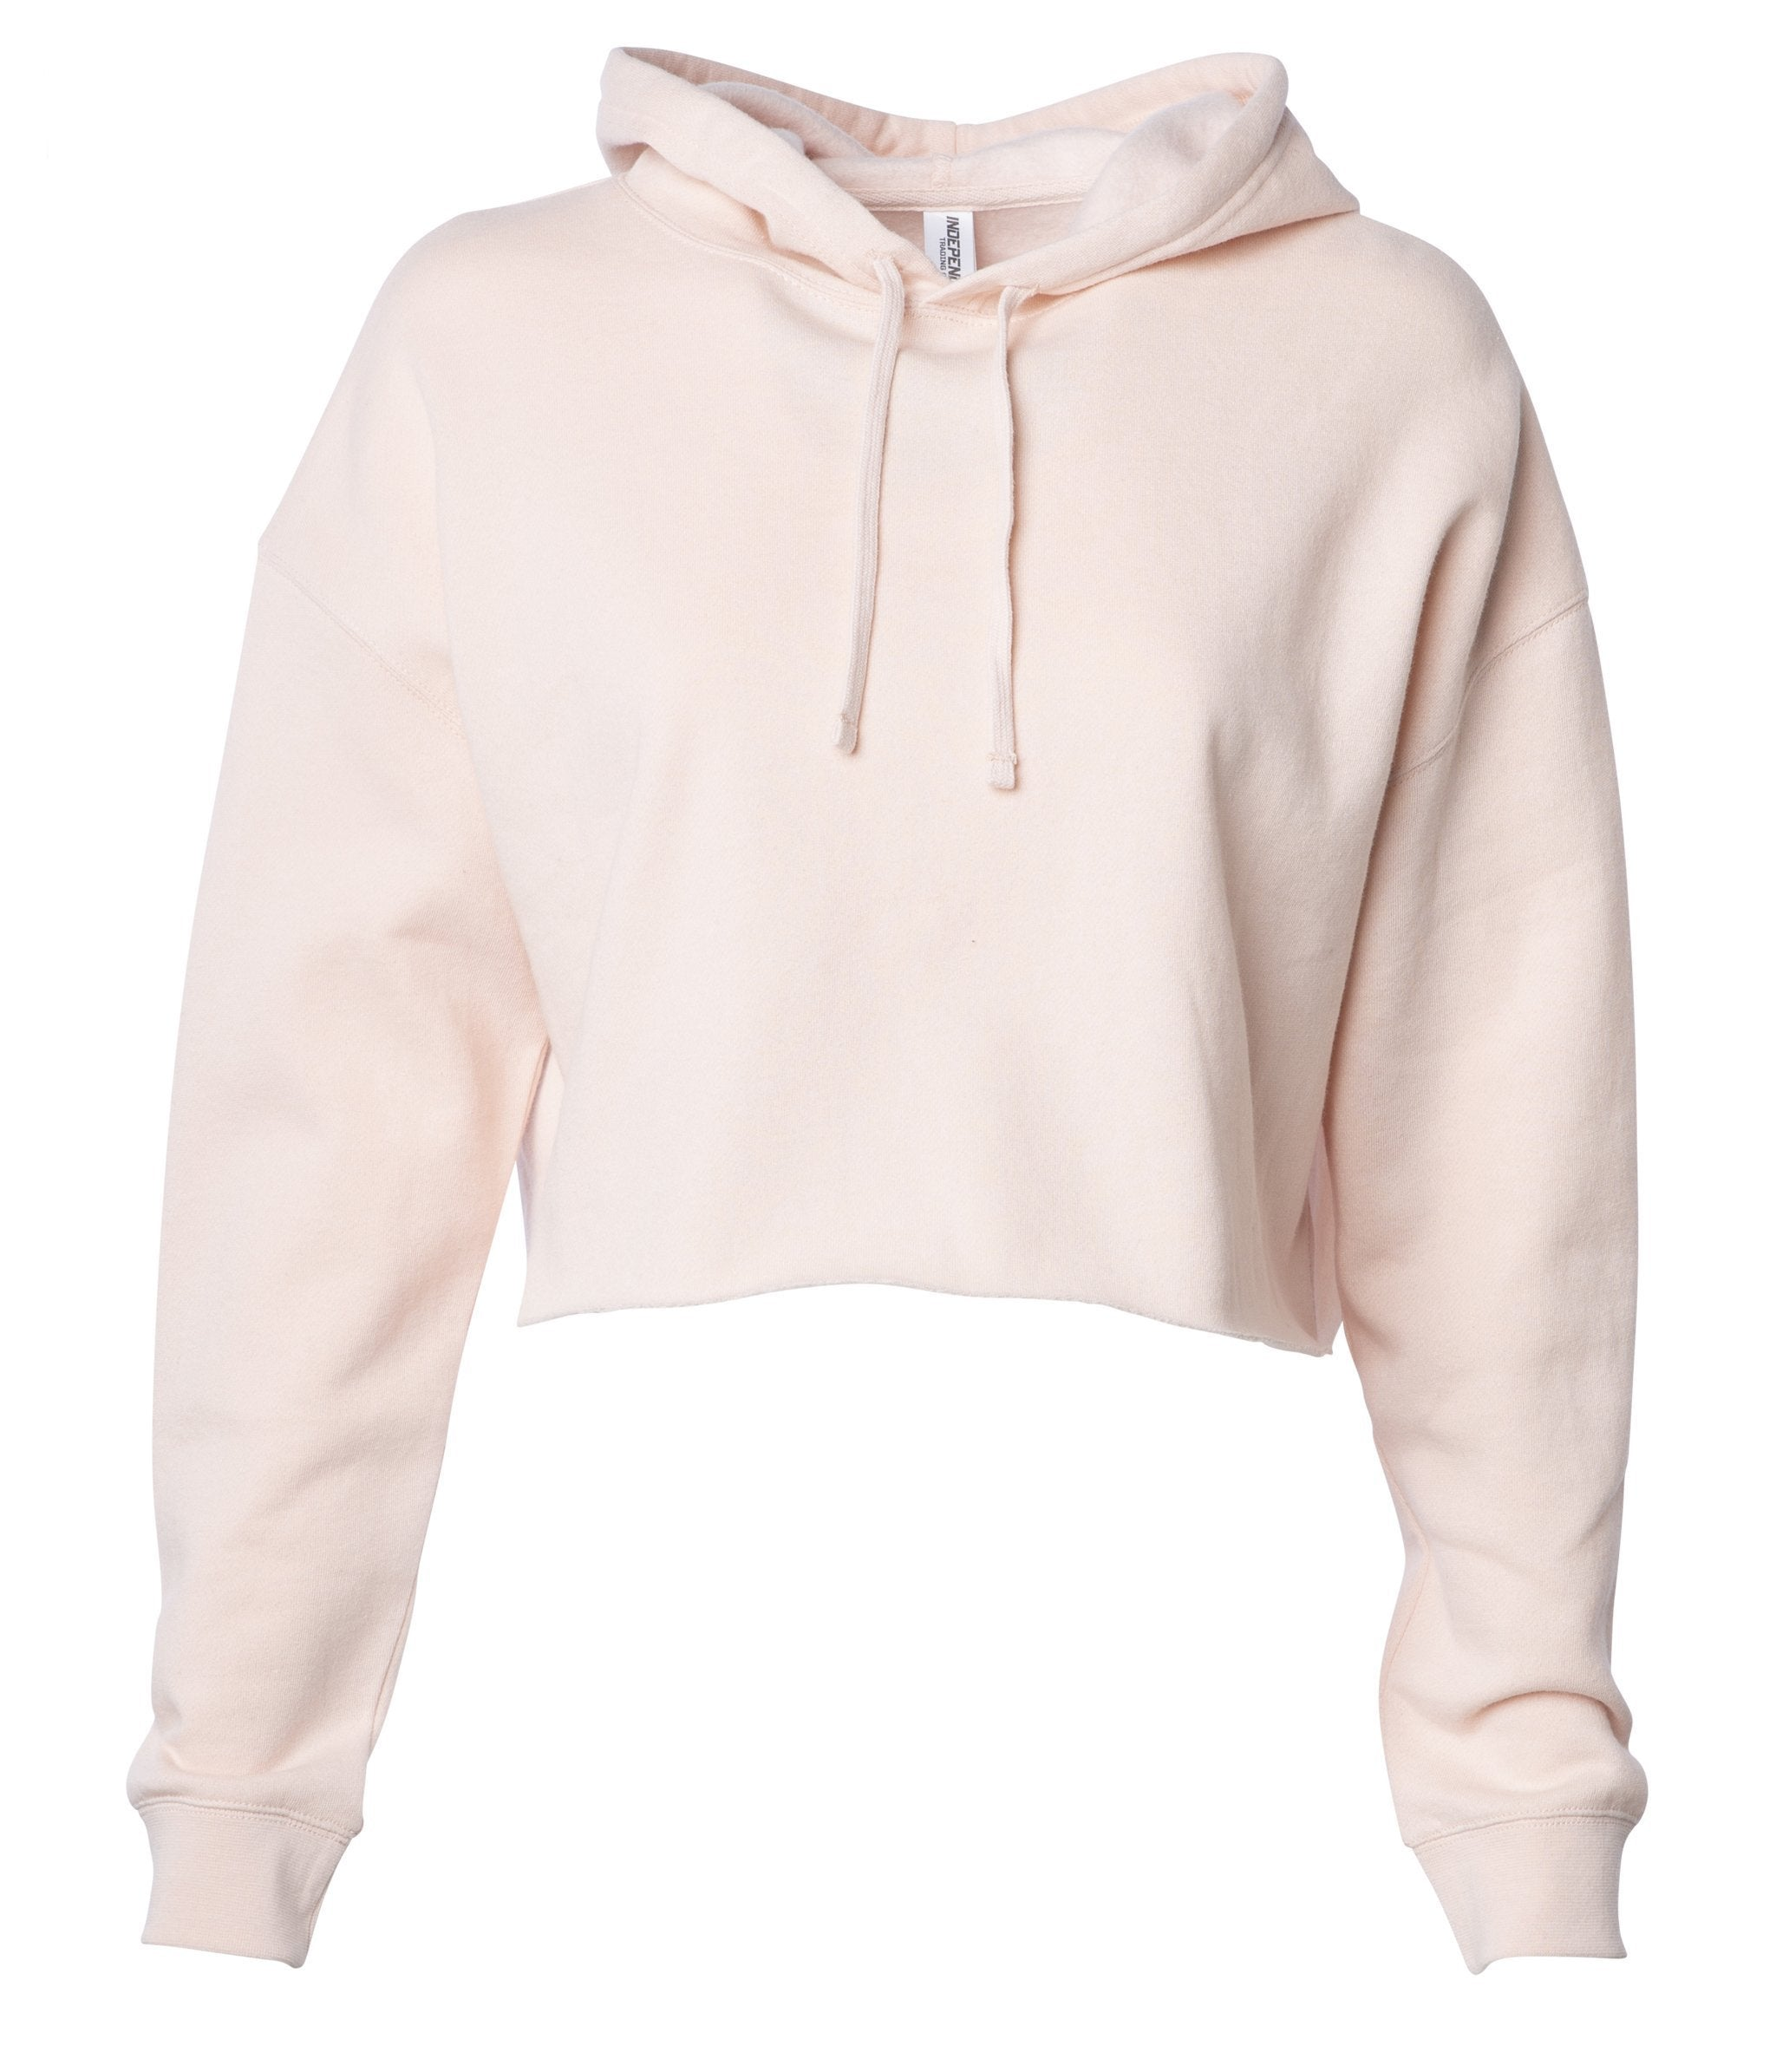 345db6809e0826 Women s Lightweight Crop Hooded Pullover - Independent Trading Company